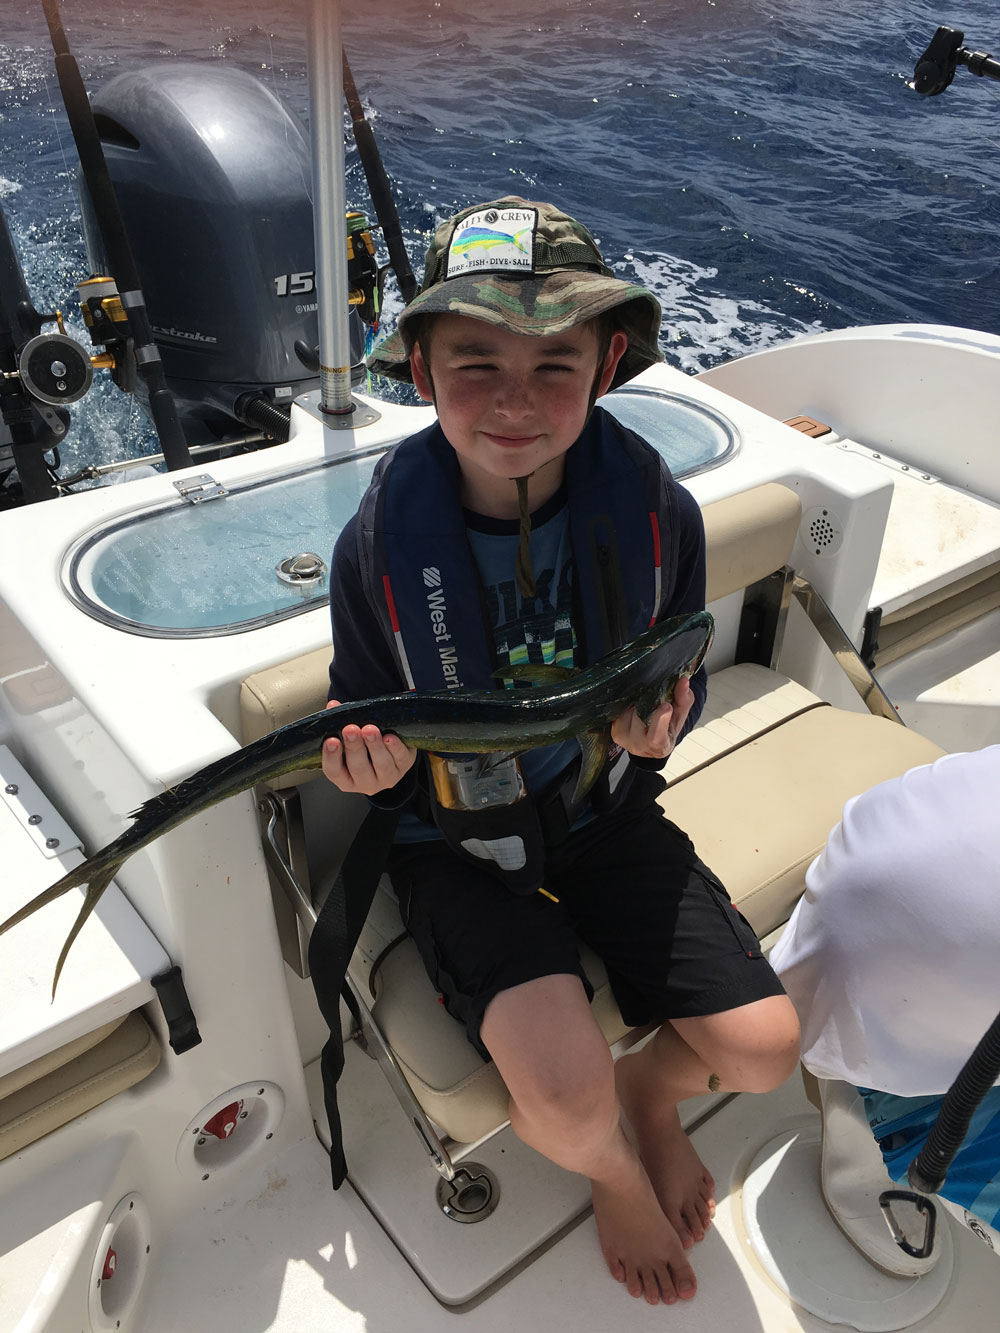 Boy sitting on the boat with dark colored fish in hands